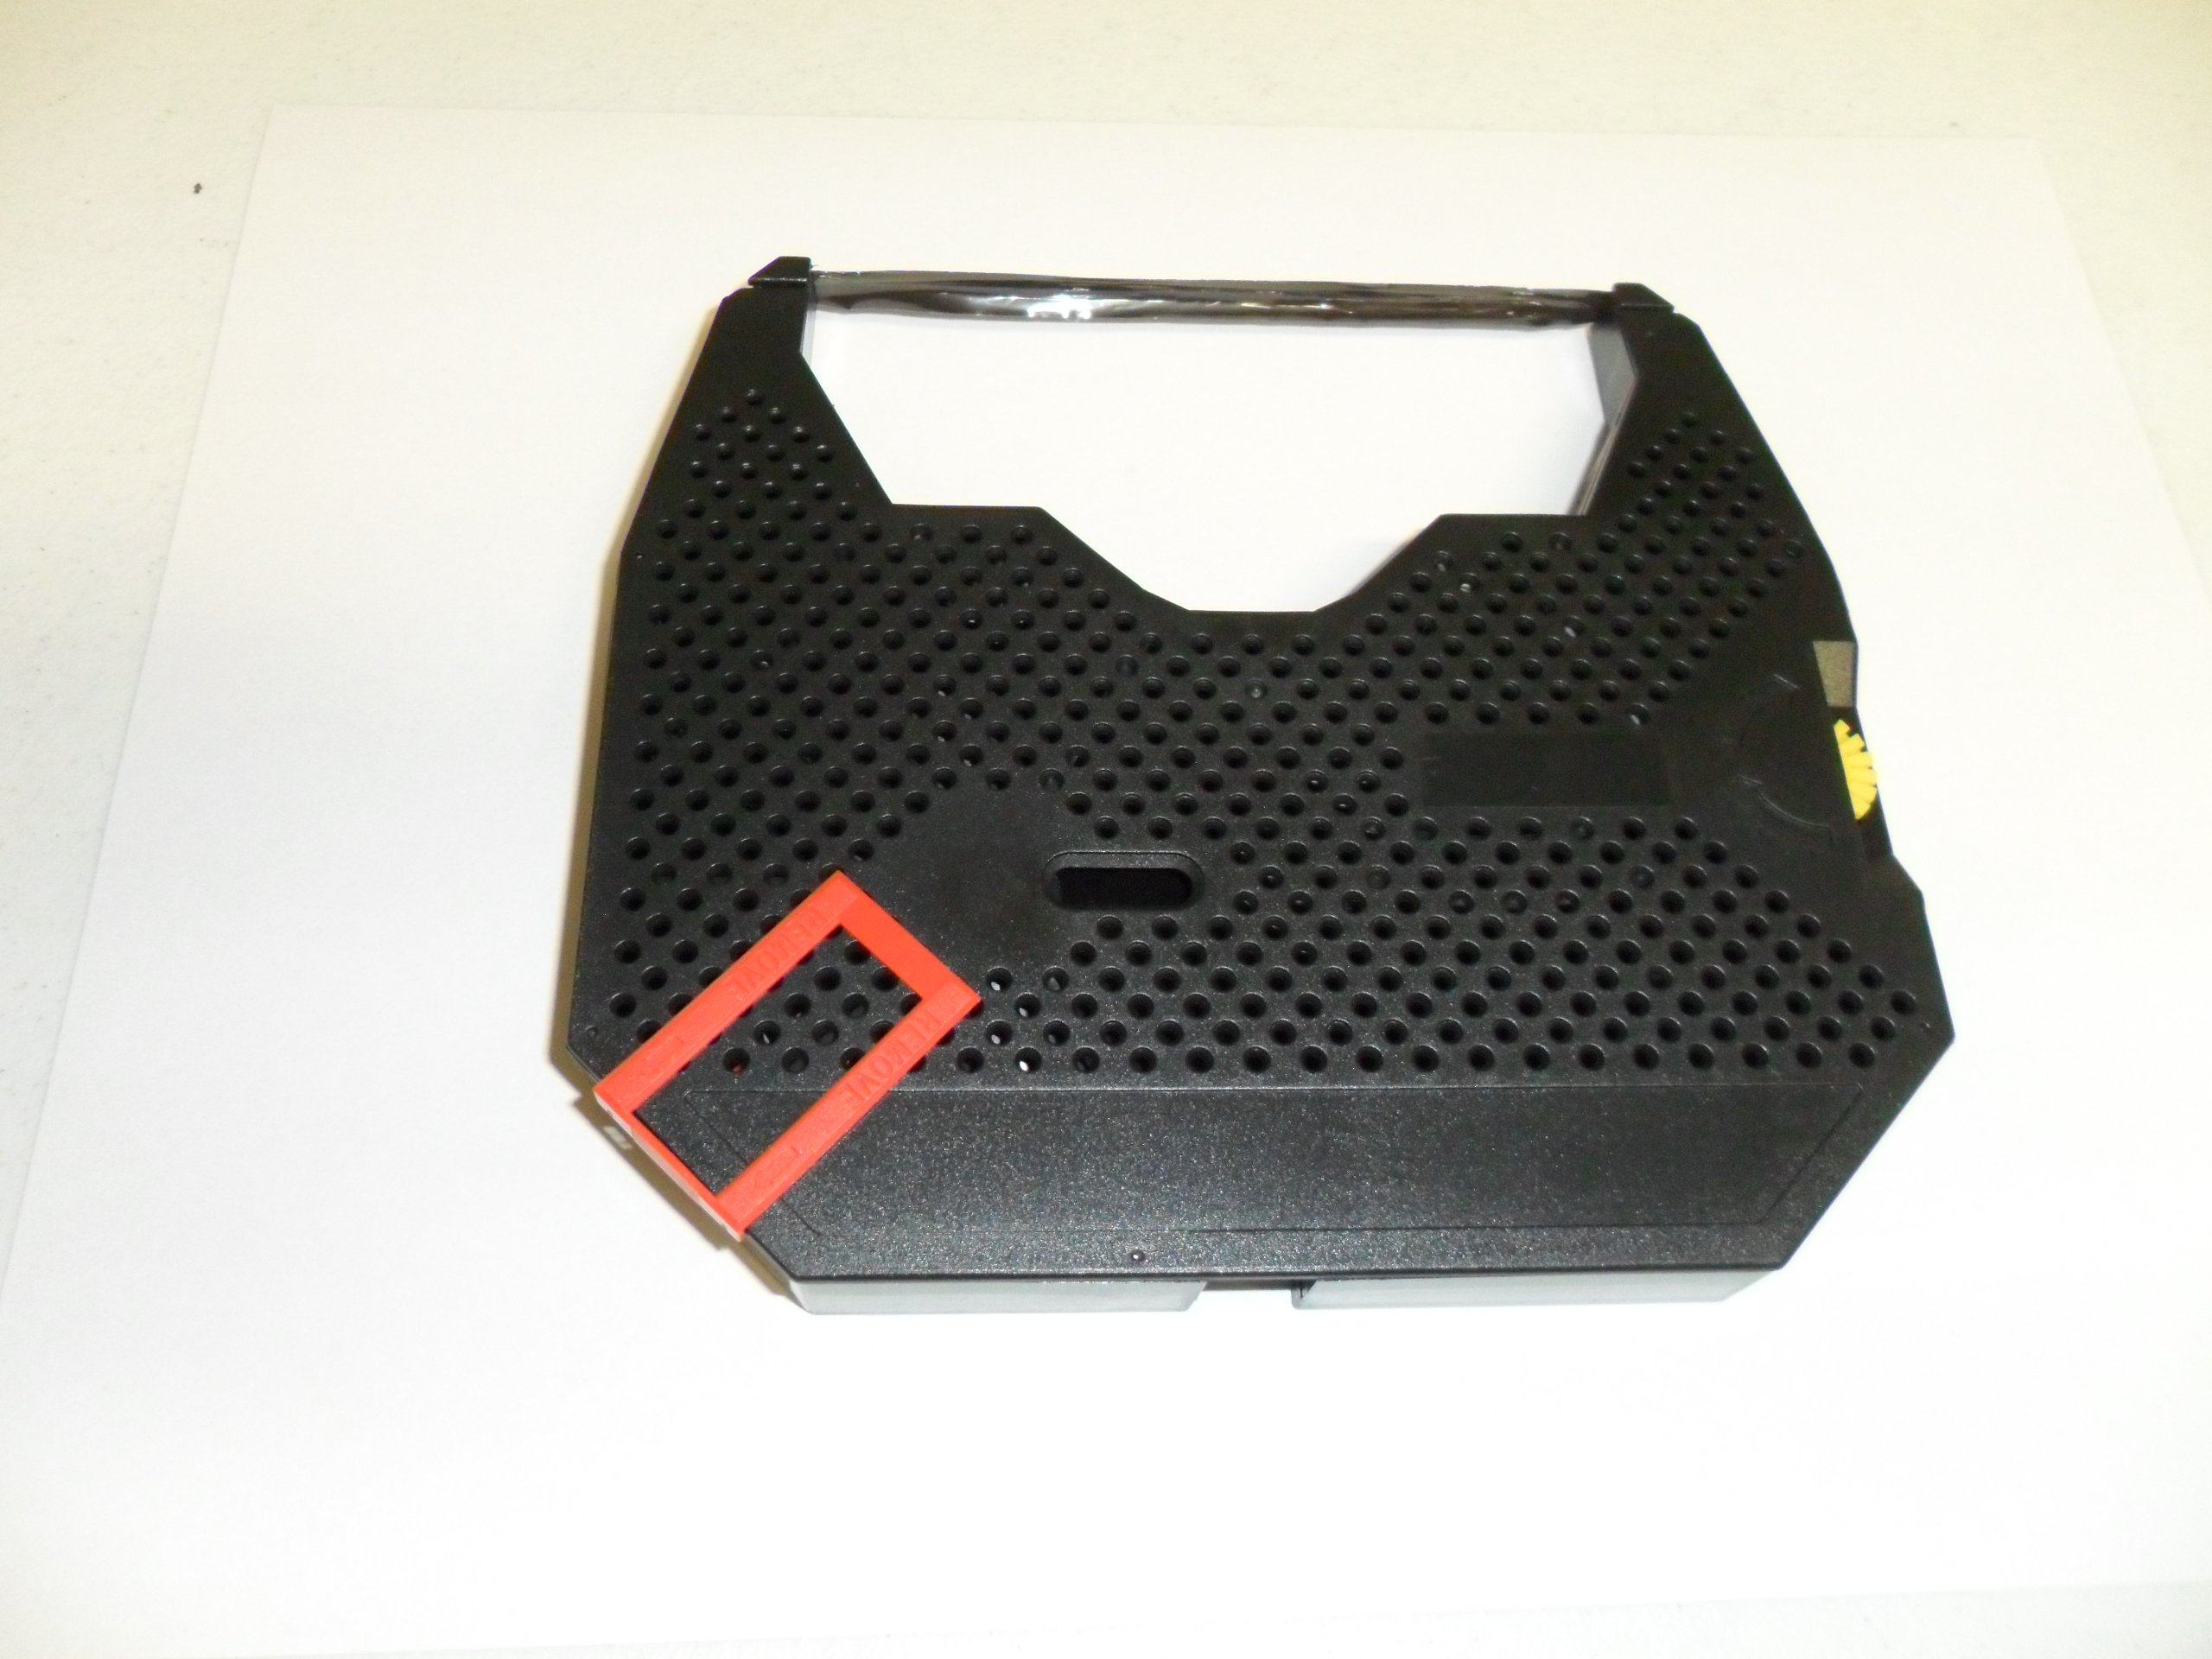 Sharp ZX300, ZX320, ZX325, ZX330, ZX331, ZX340 and Others Typewriter Ribbon, Correctable, Compatible